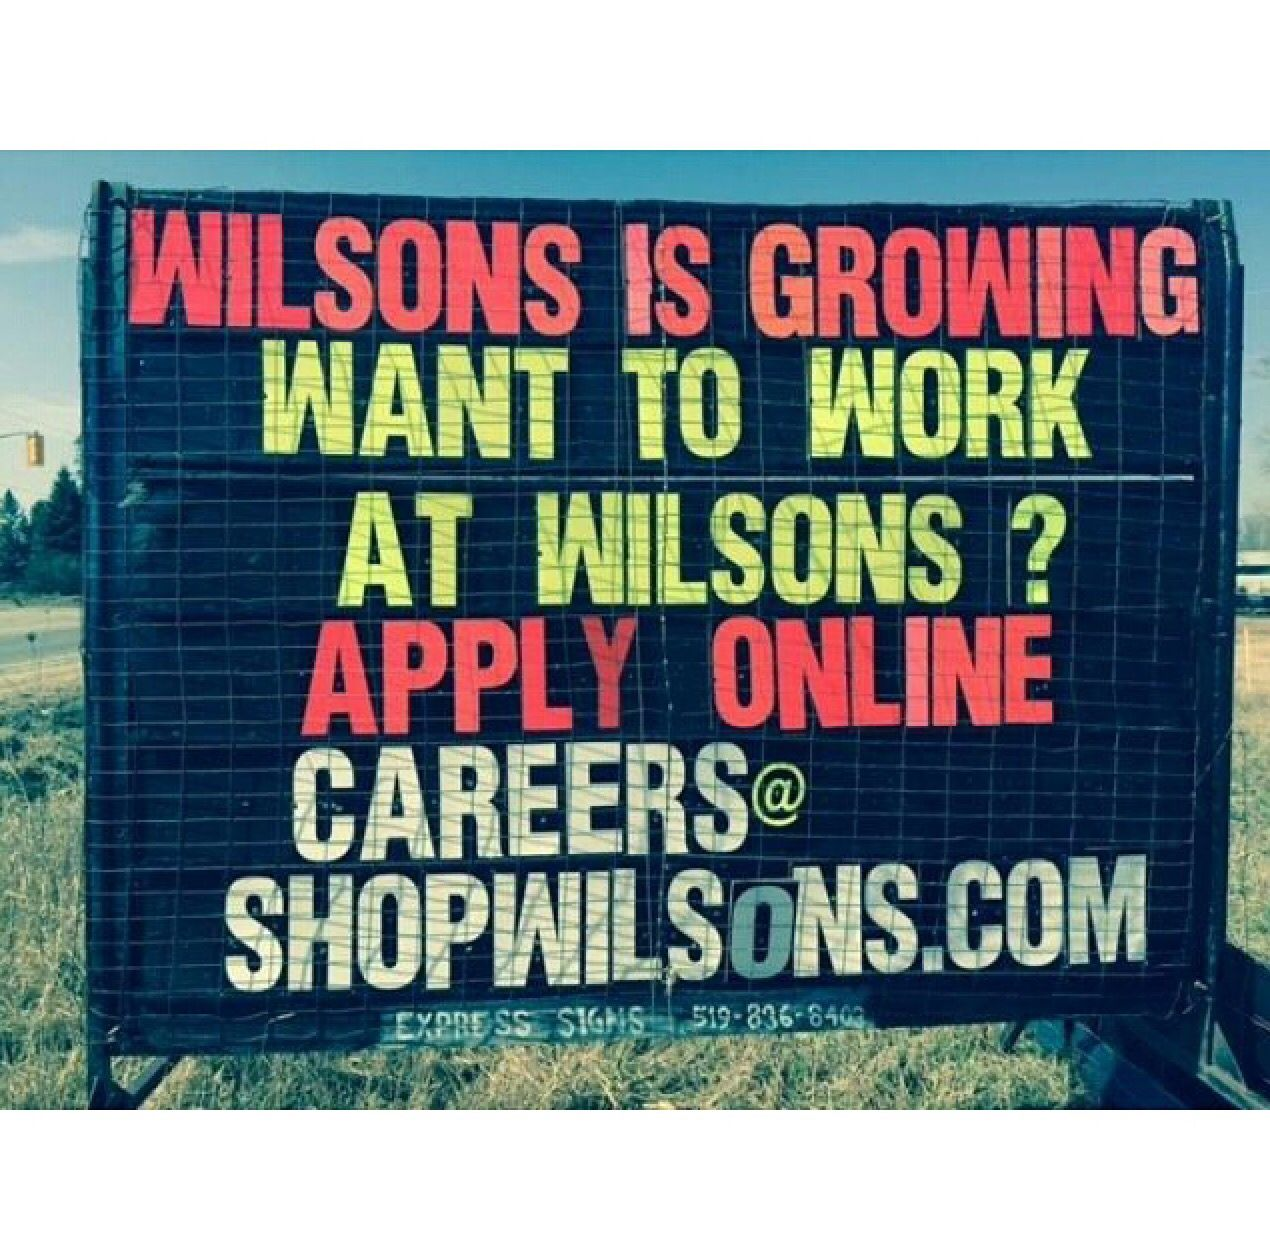 i want an exciting career